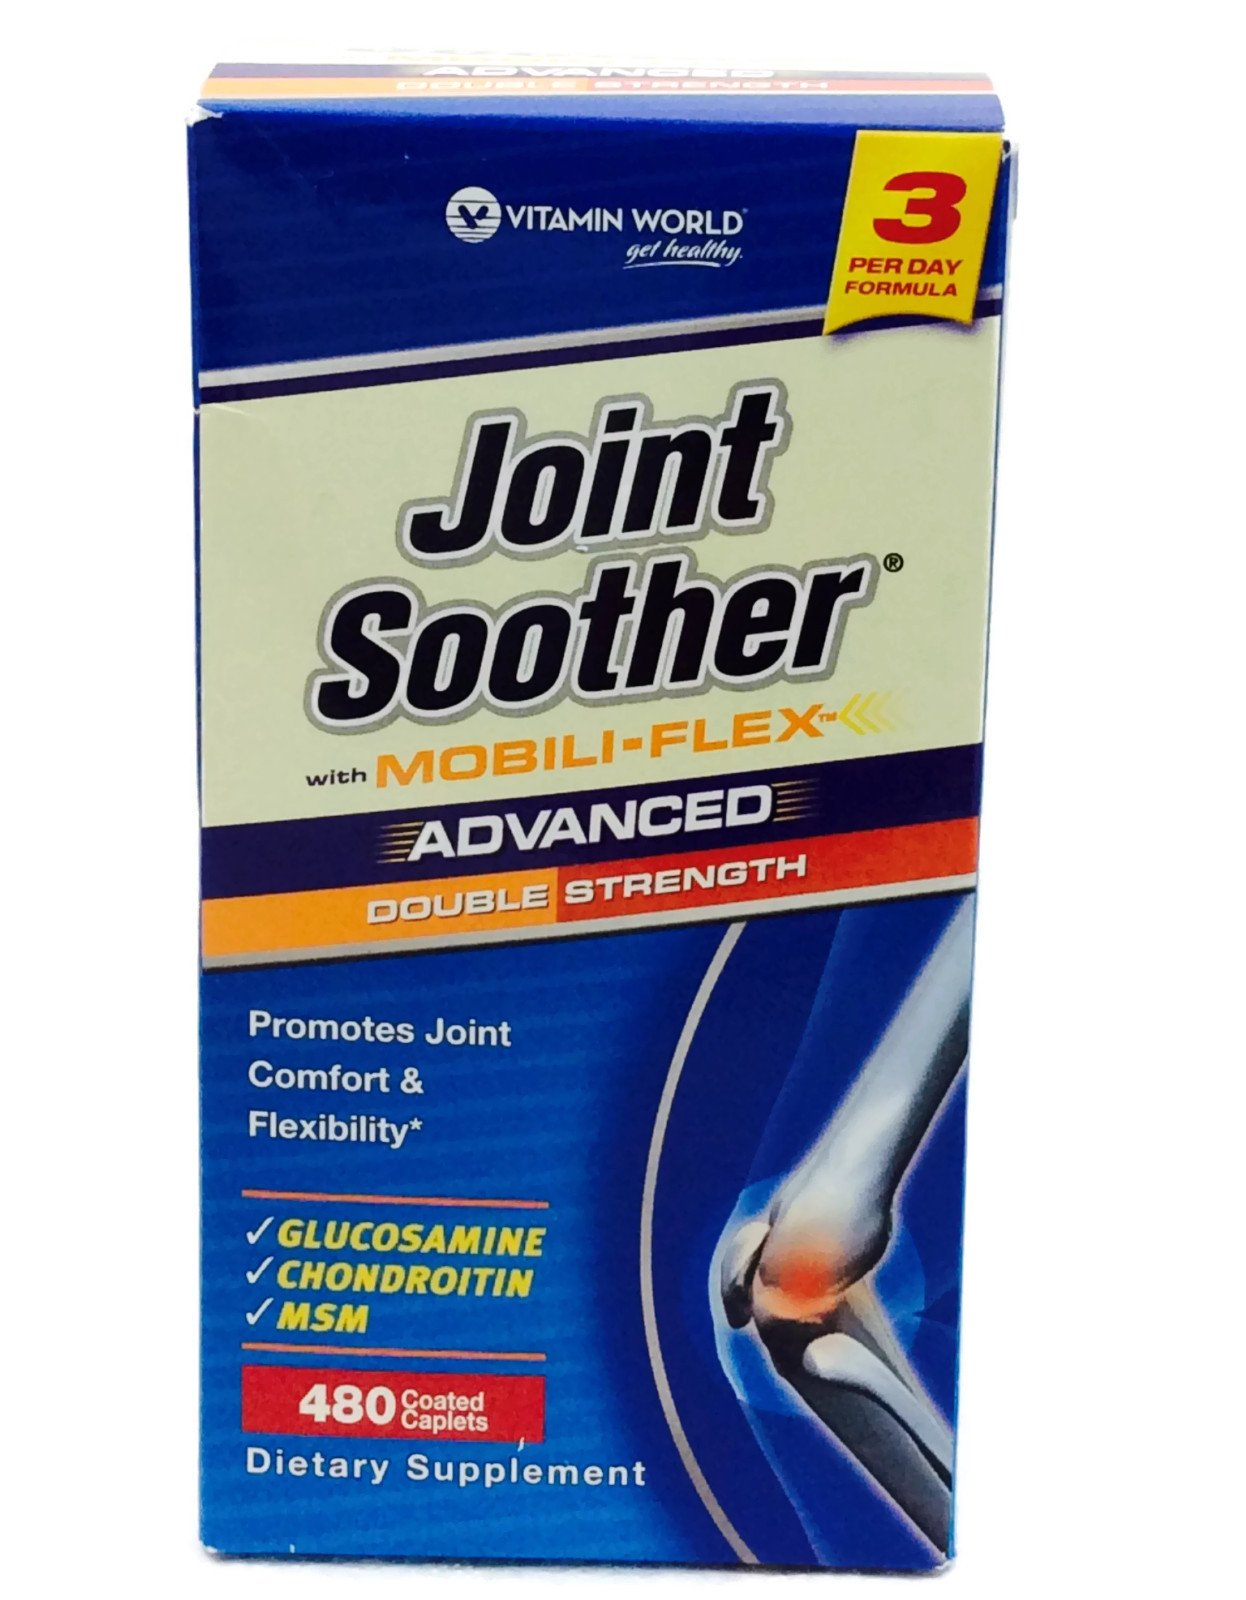 Advanced Double Strength Joint Soother 480 Caplets by Vitamin World